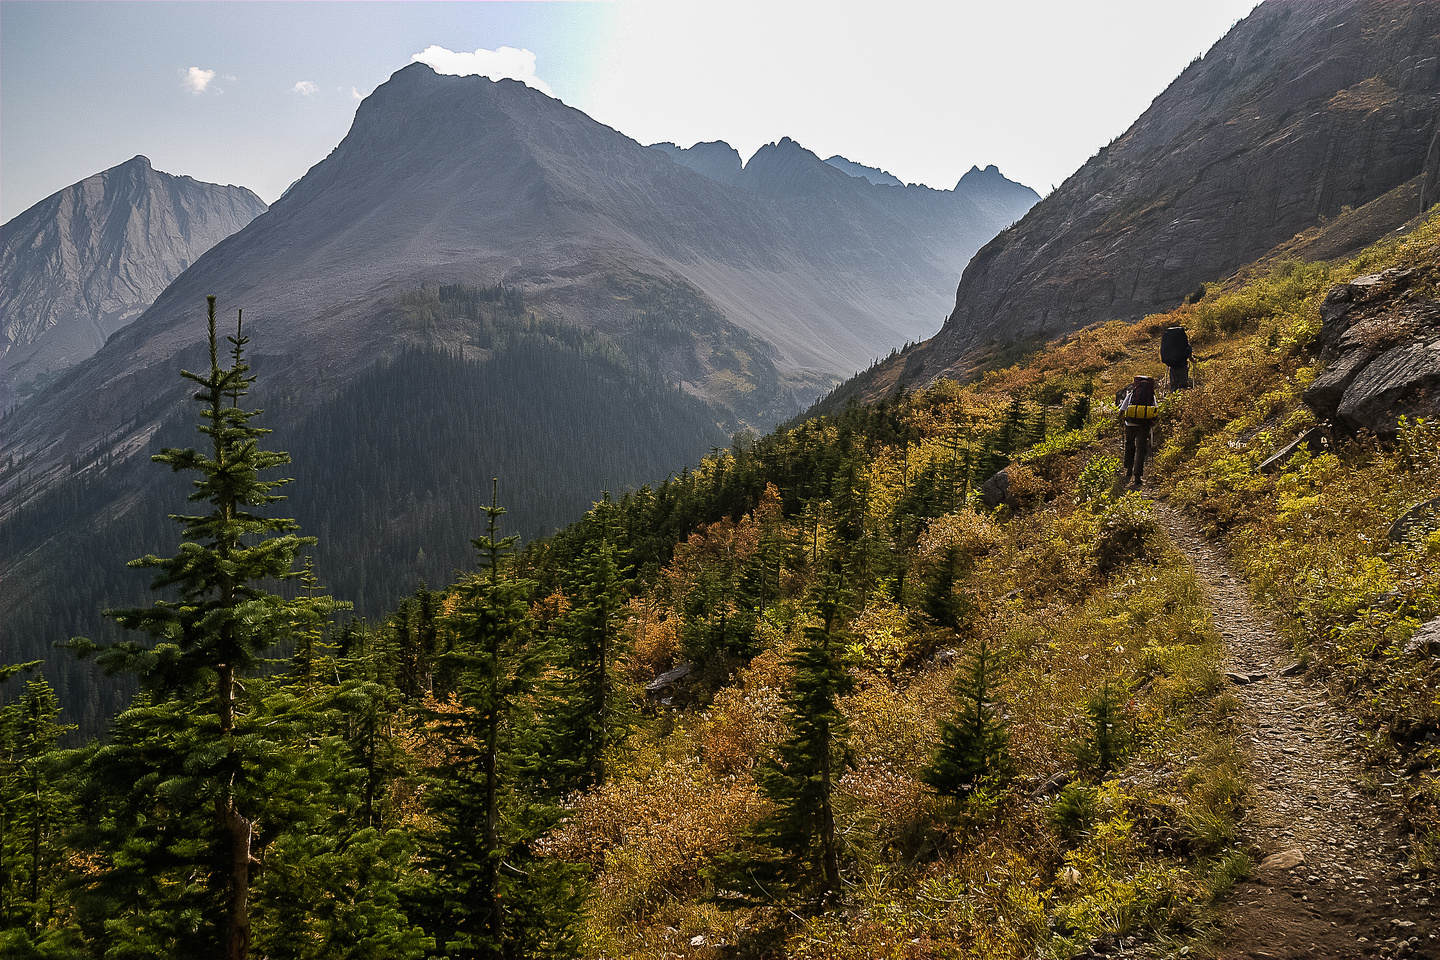 One of my favorite hiking sections from Three Isle to Upper Kananaskis Lake is above the headwall.